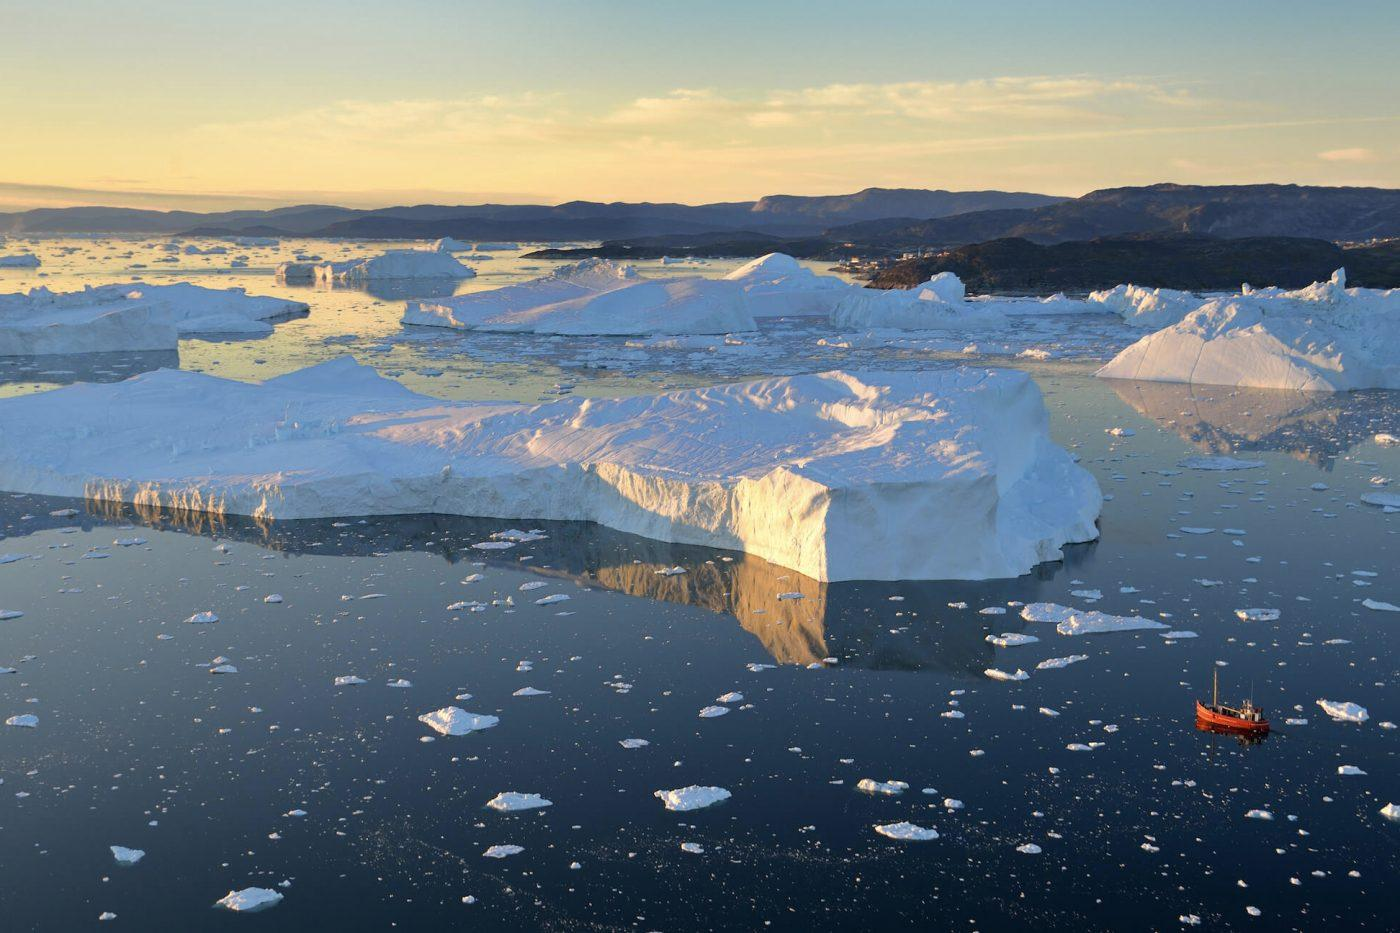 Ilulissat Icefjord from the air. By Rino Rasmussen